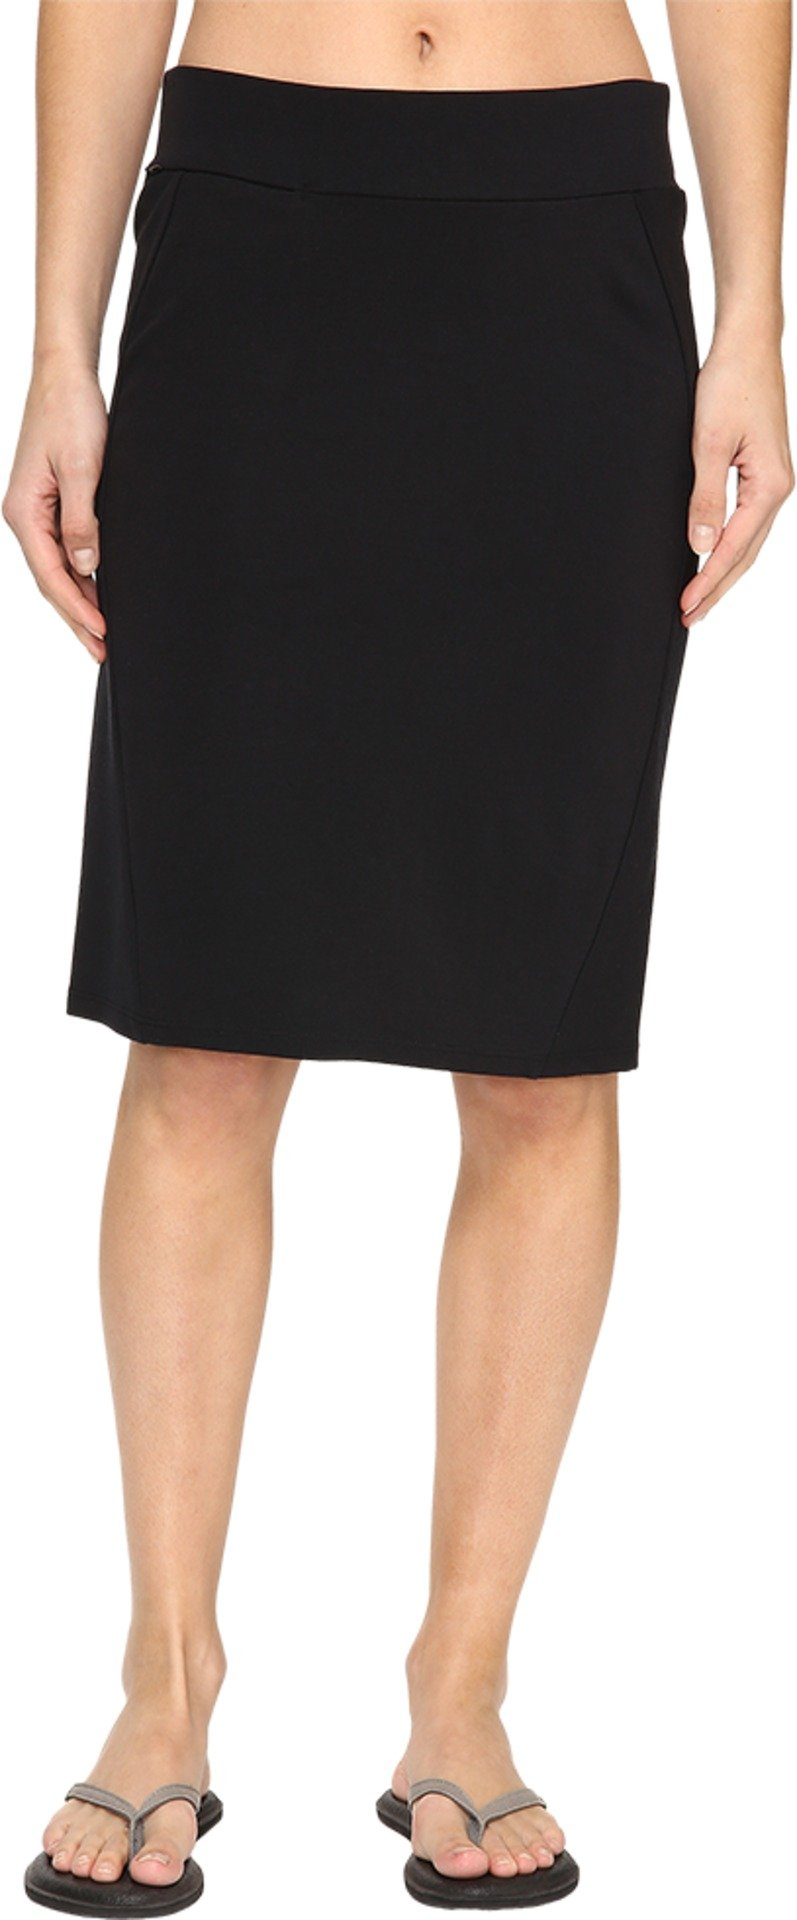 Toad&Co Women's Transita Skirt Black Skirt